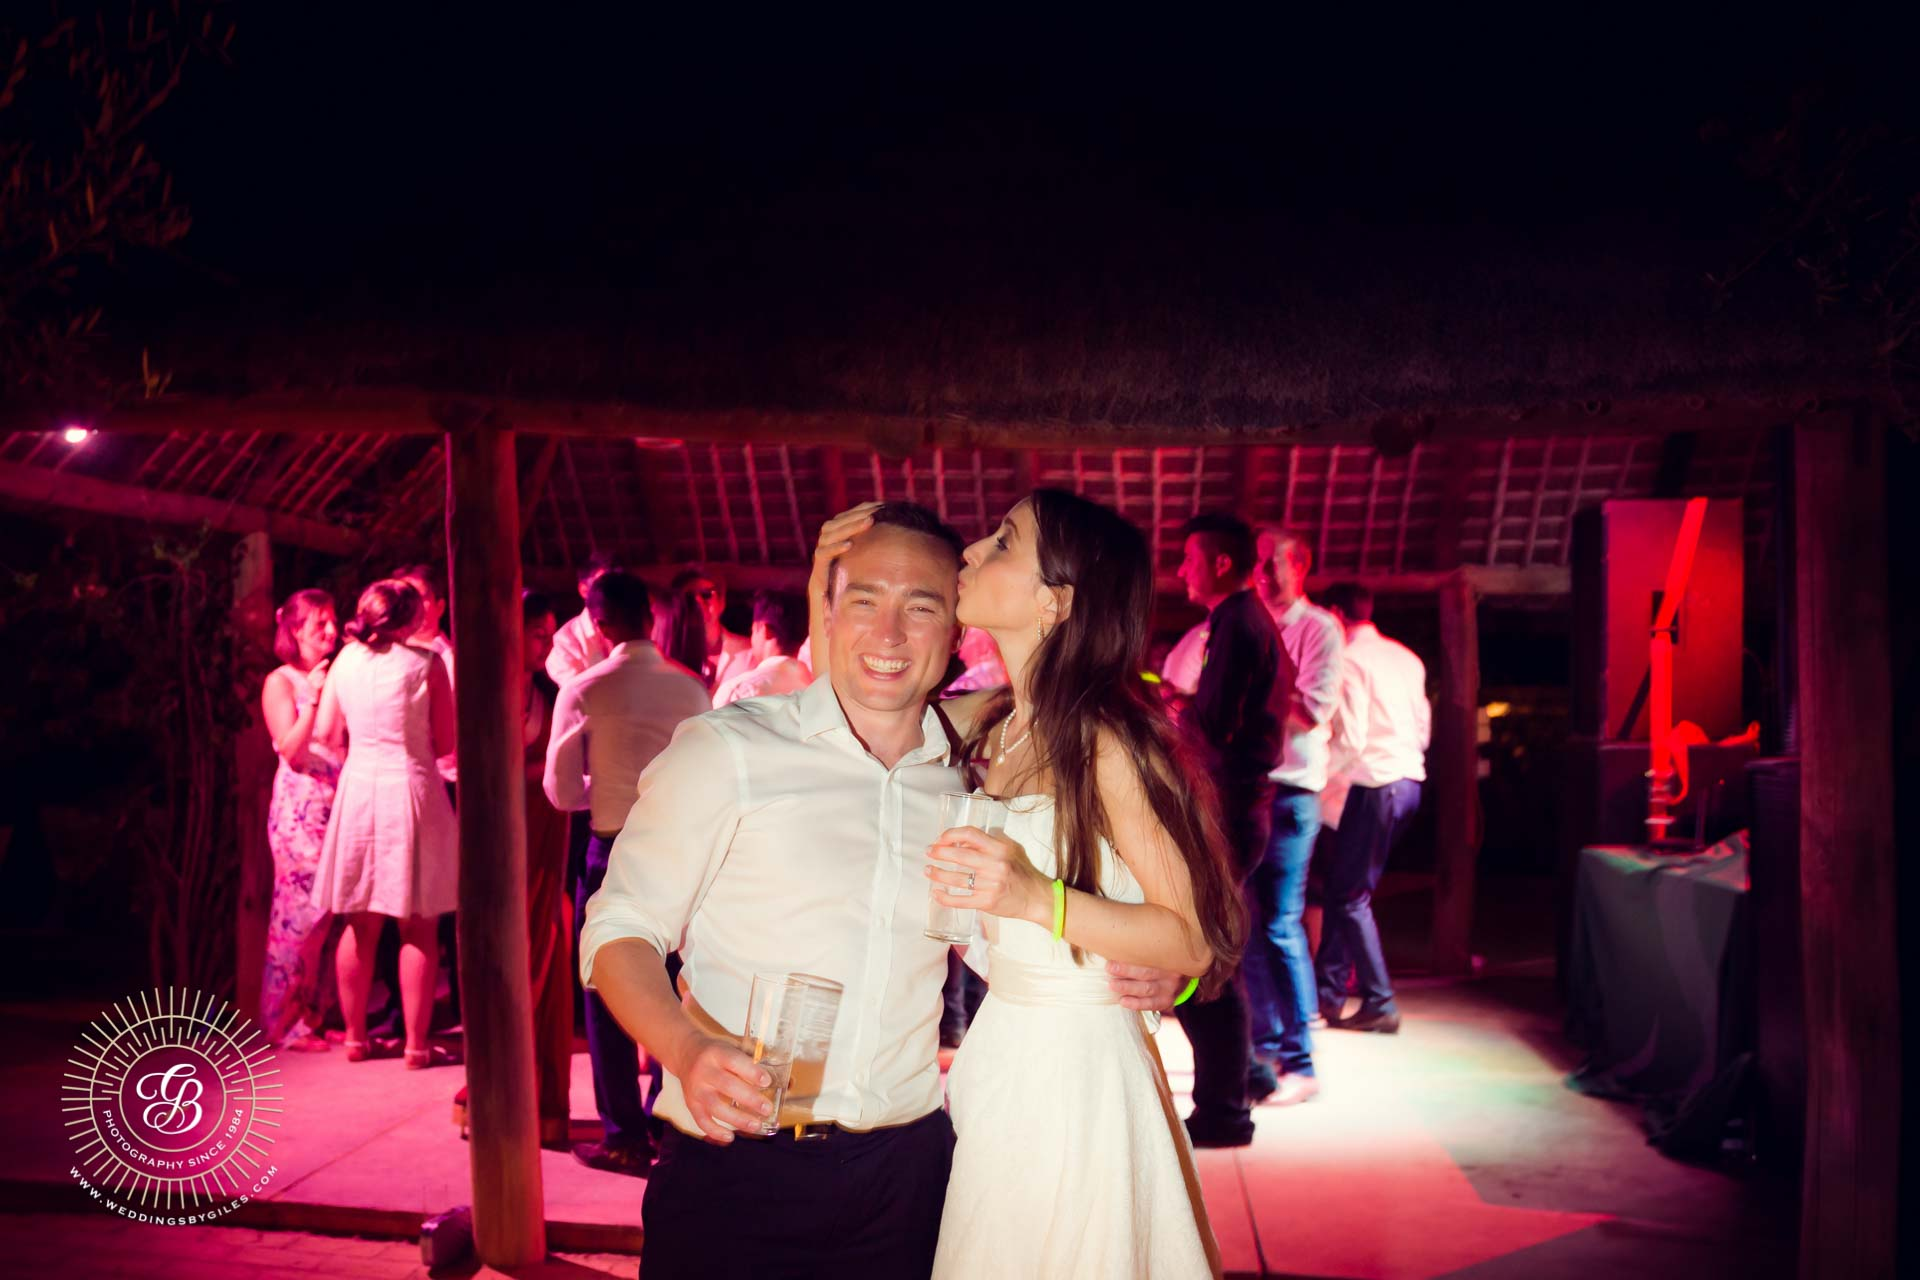 all night wedding party in spain